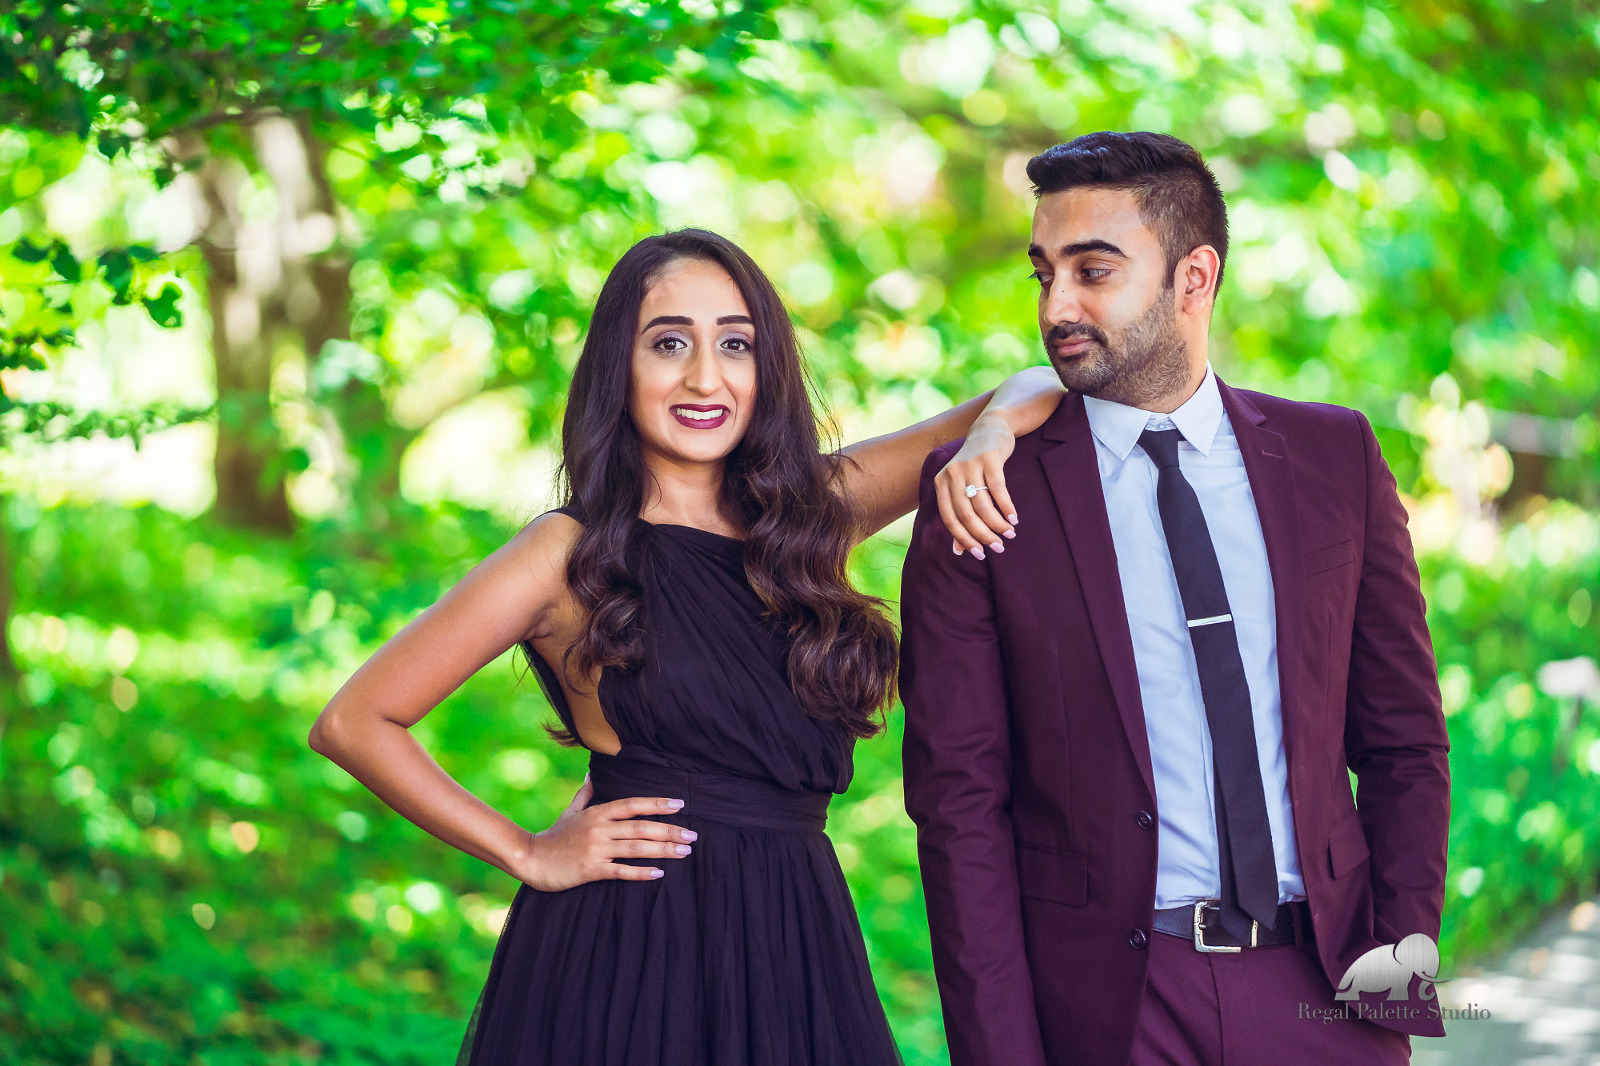 Best Indian Wedding Photography in NJ, PA, and DE area.